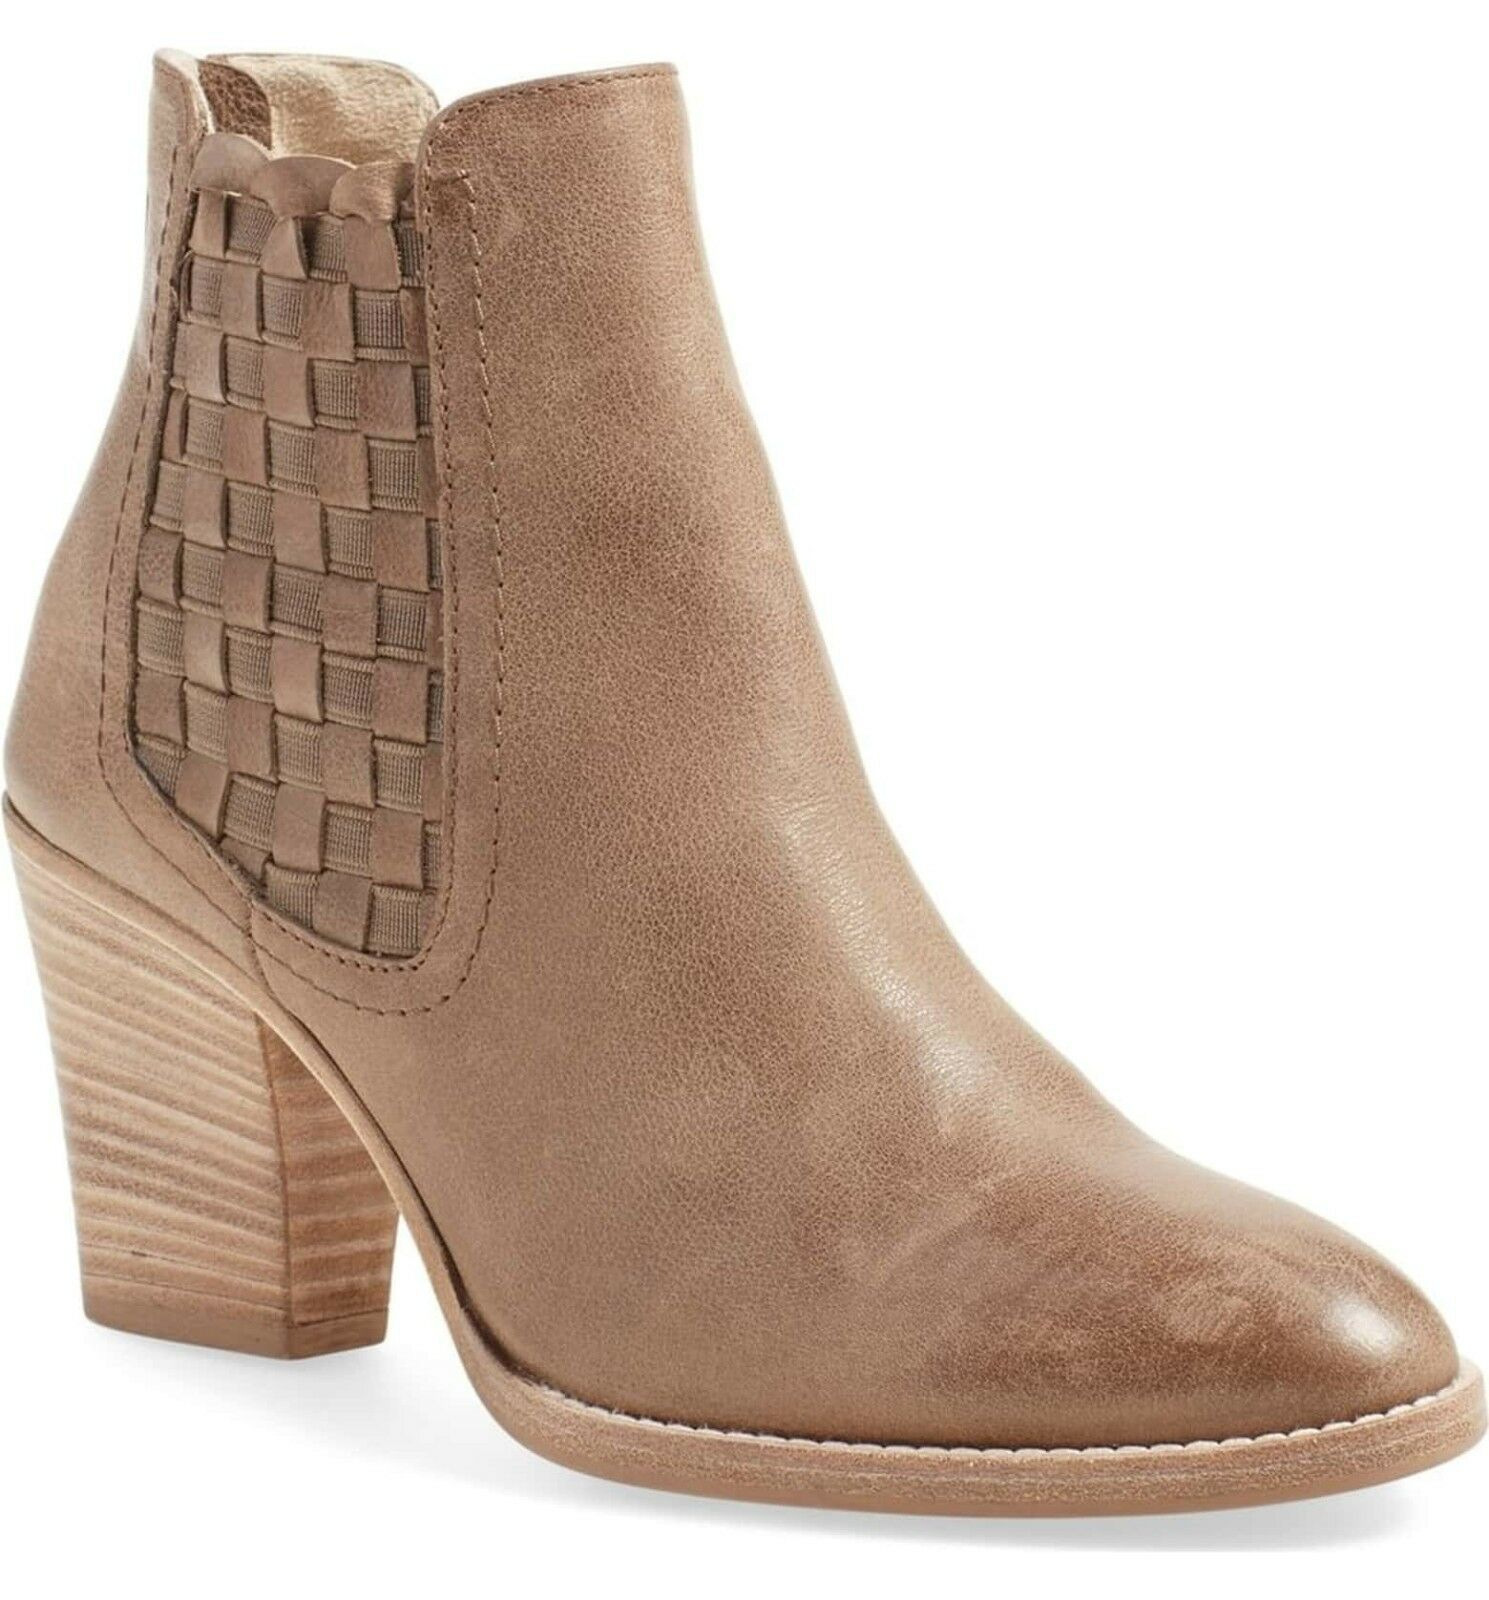 Womens Aquatalia Boots Frannie Weatherproof Taupe Woven Zip Ankle Booties 9.5 M